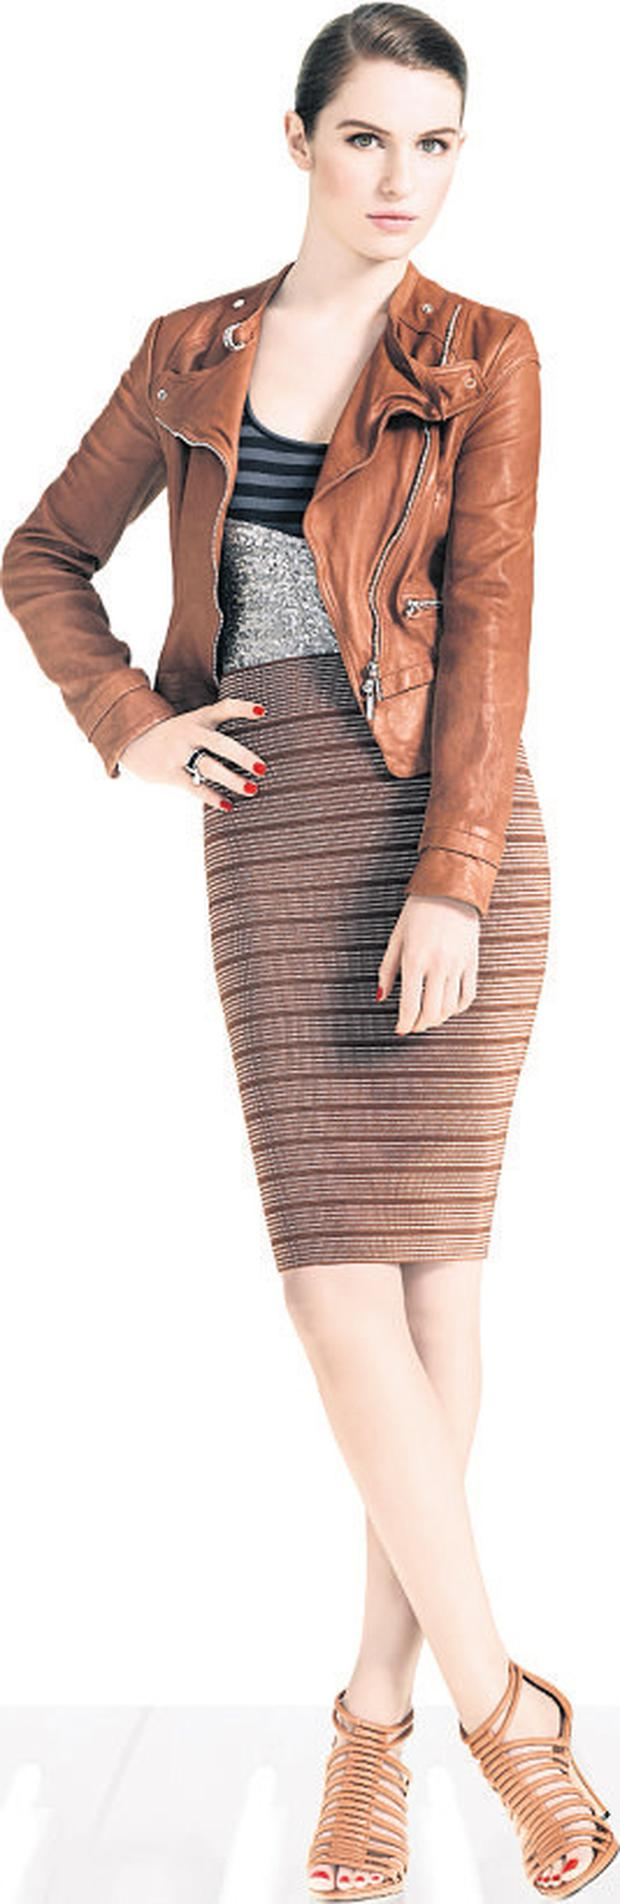 Leather jacket, €399, sequin and stripped top, €99, skirt, €199 all from www.karenmillen.com